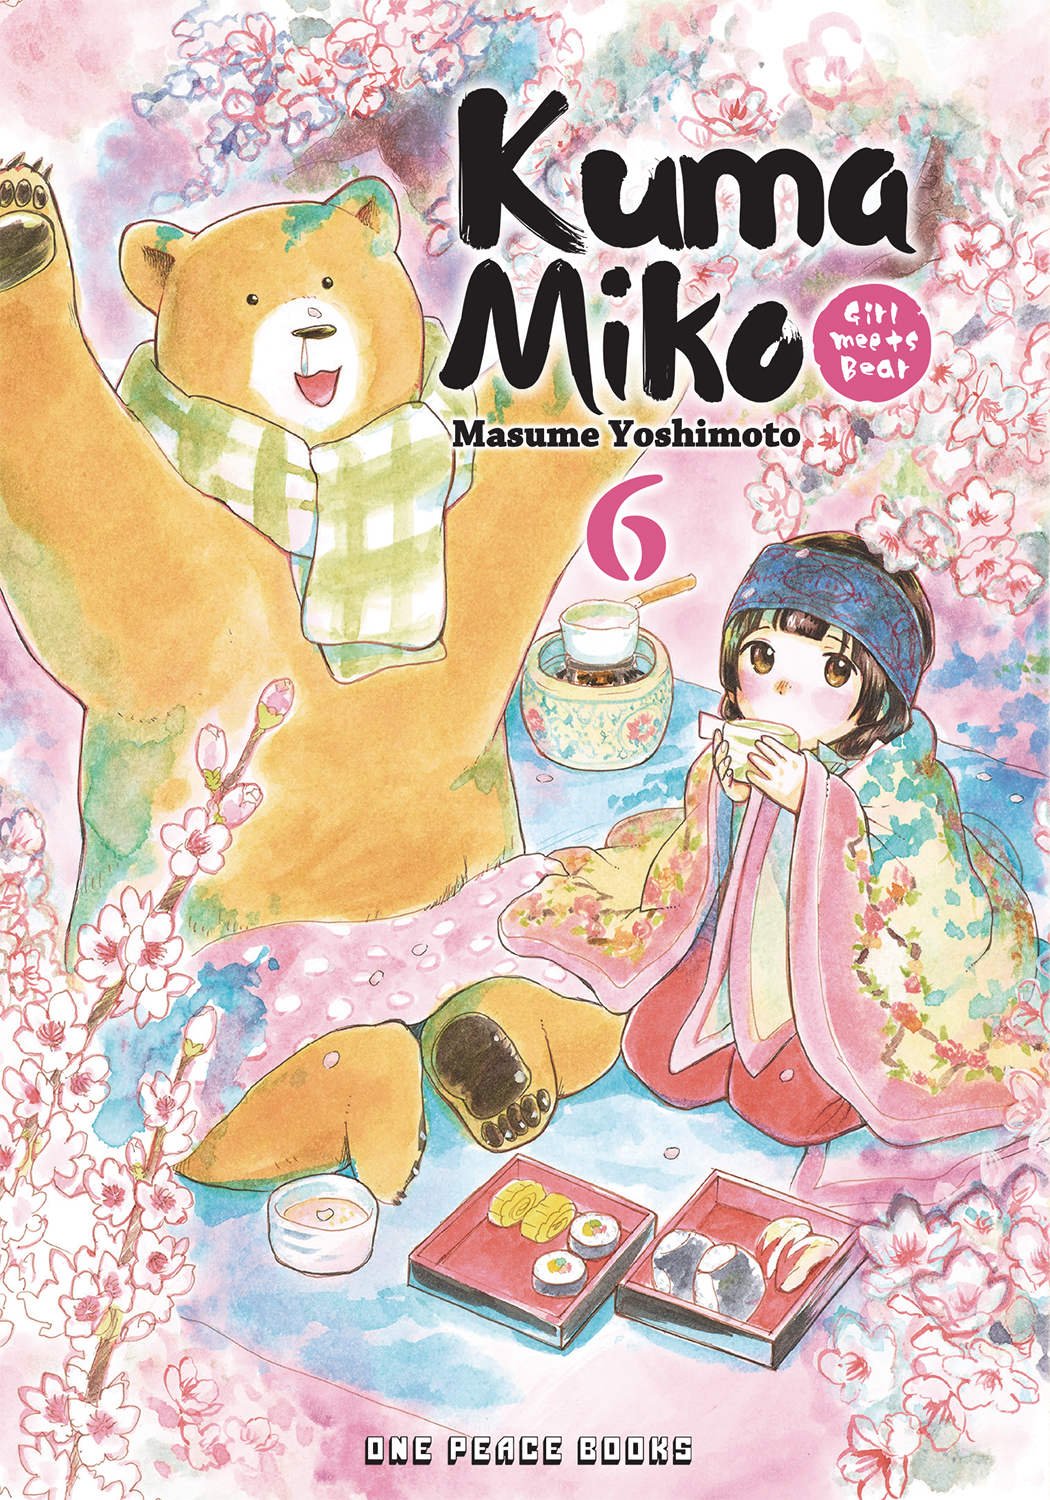 KUMA MIKO GIRL MEETS BEAR GN VOL 06